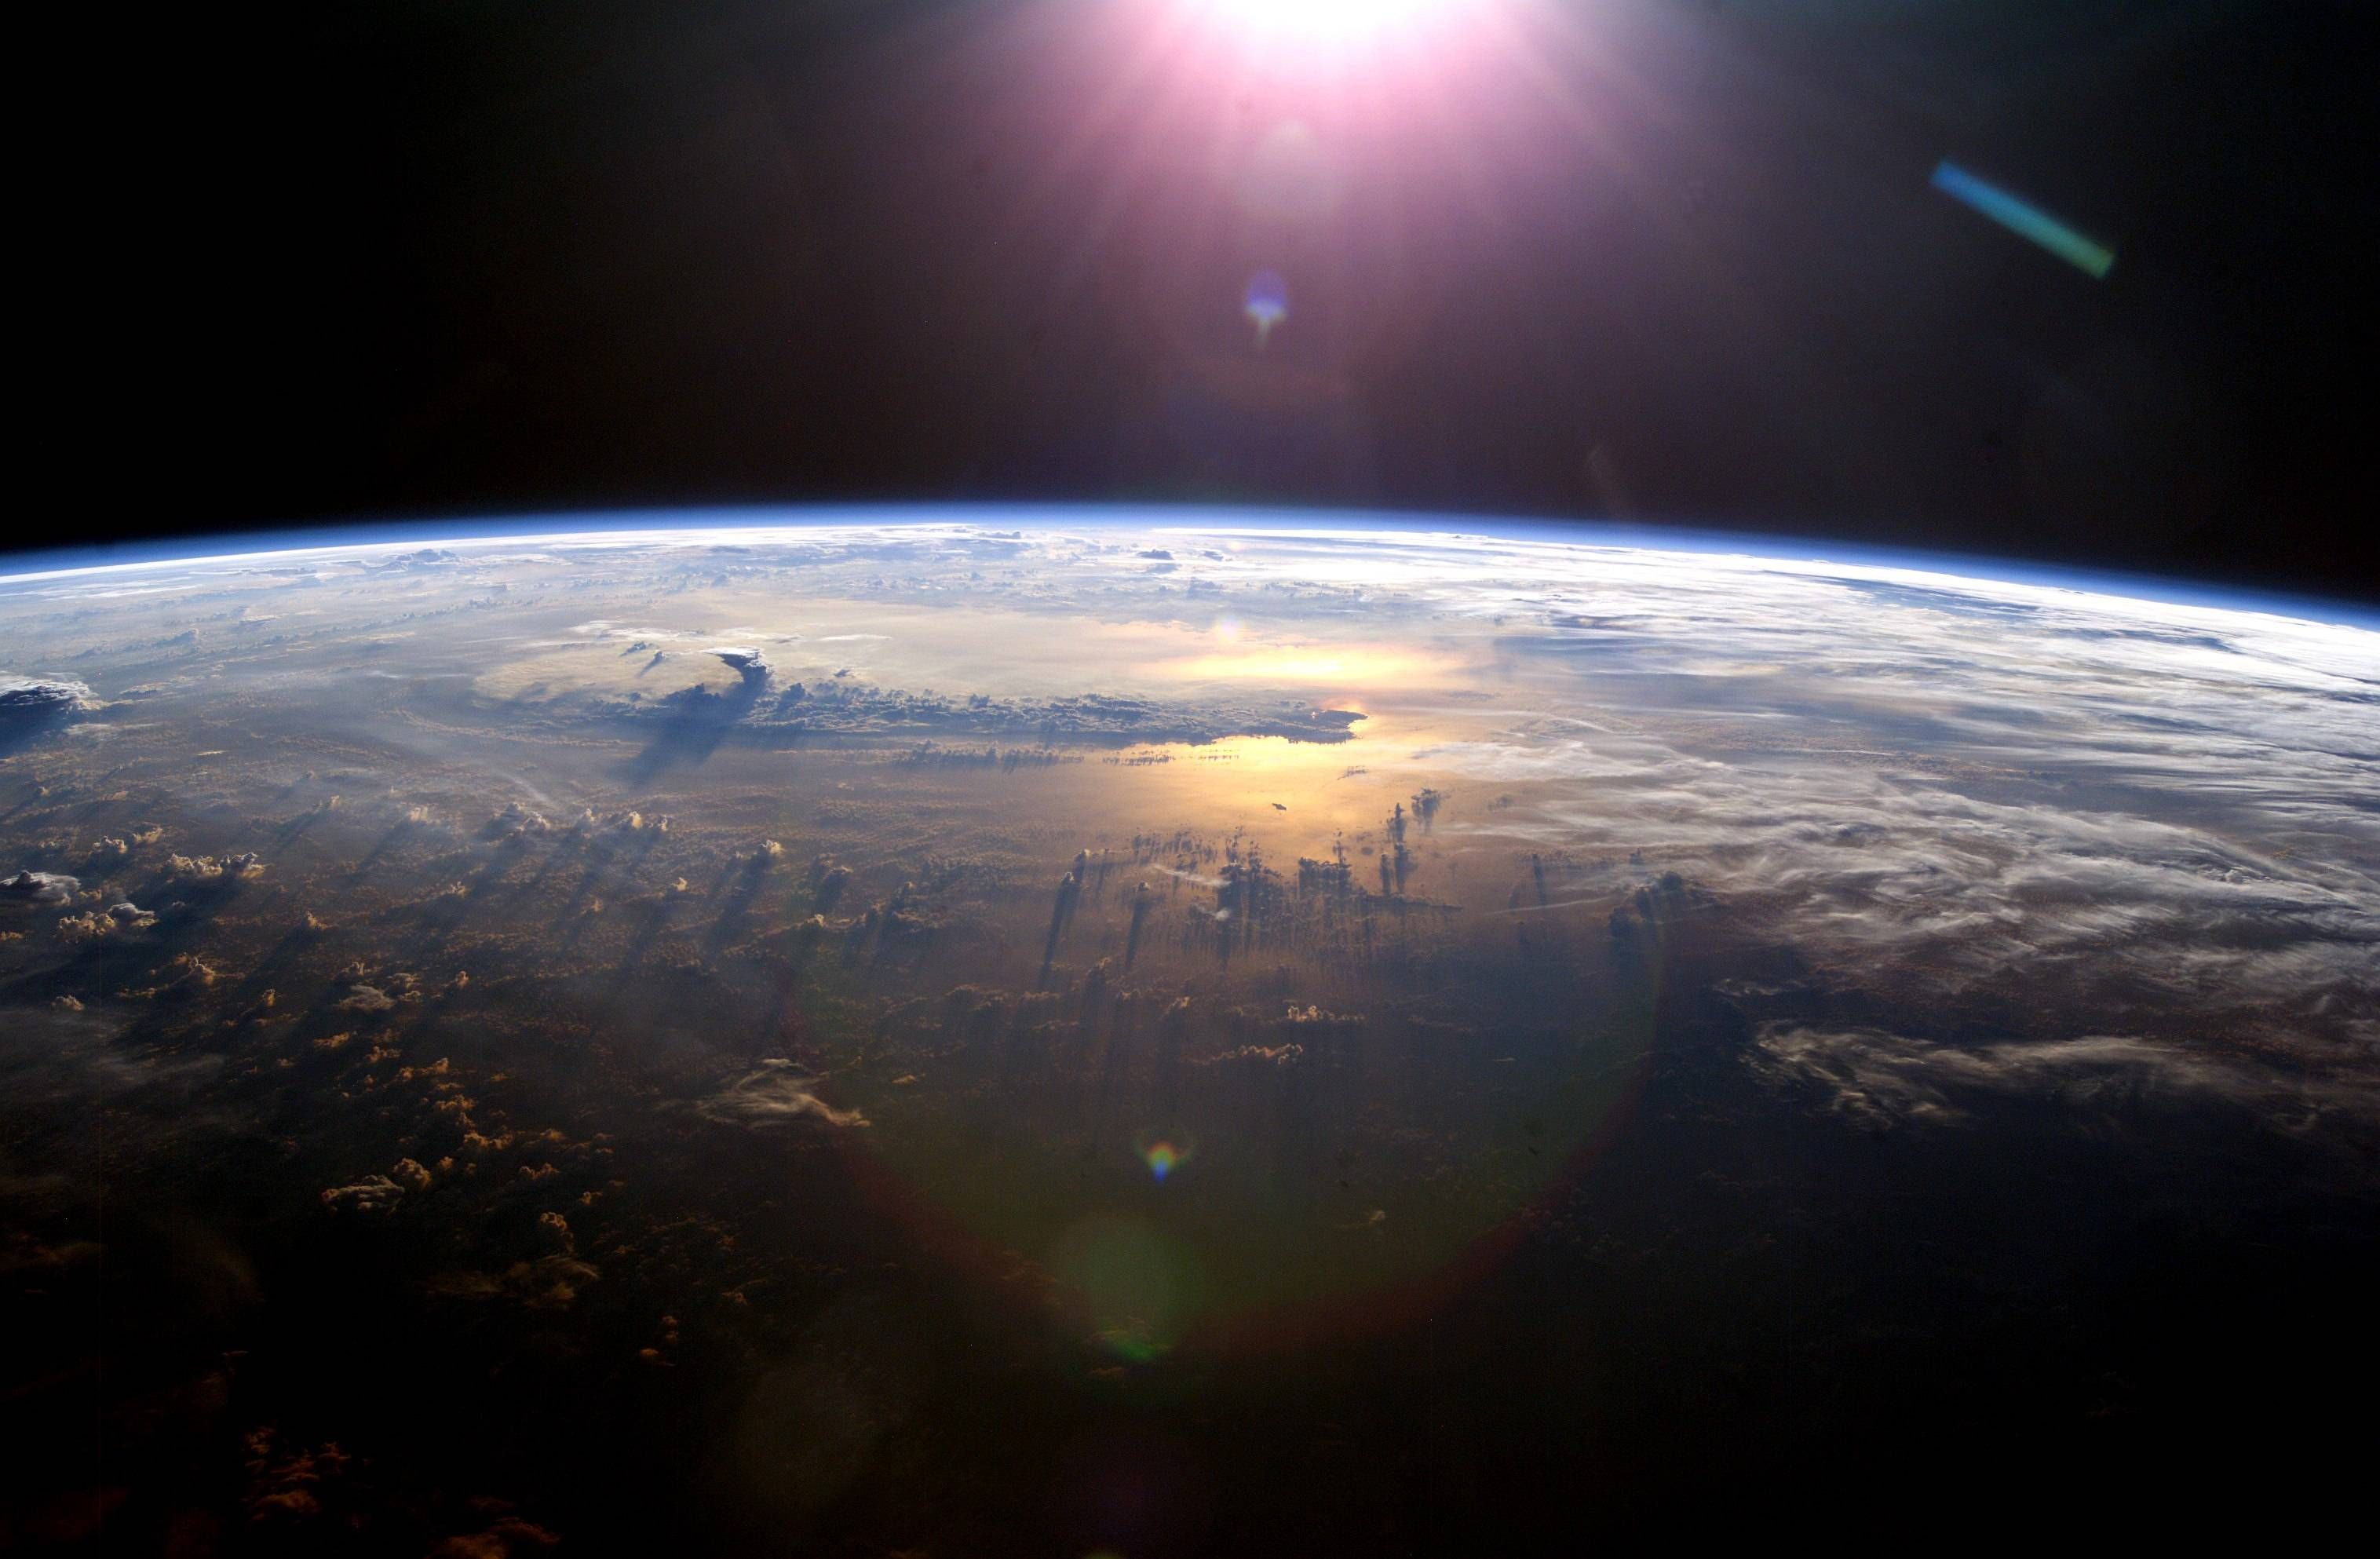 Sun Setting Over The Pacific Ocean As Seen From Iss Earth From Space Ocean Sunset Space Photos Outer space earth sunset space planet